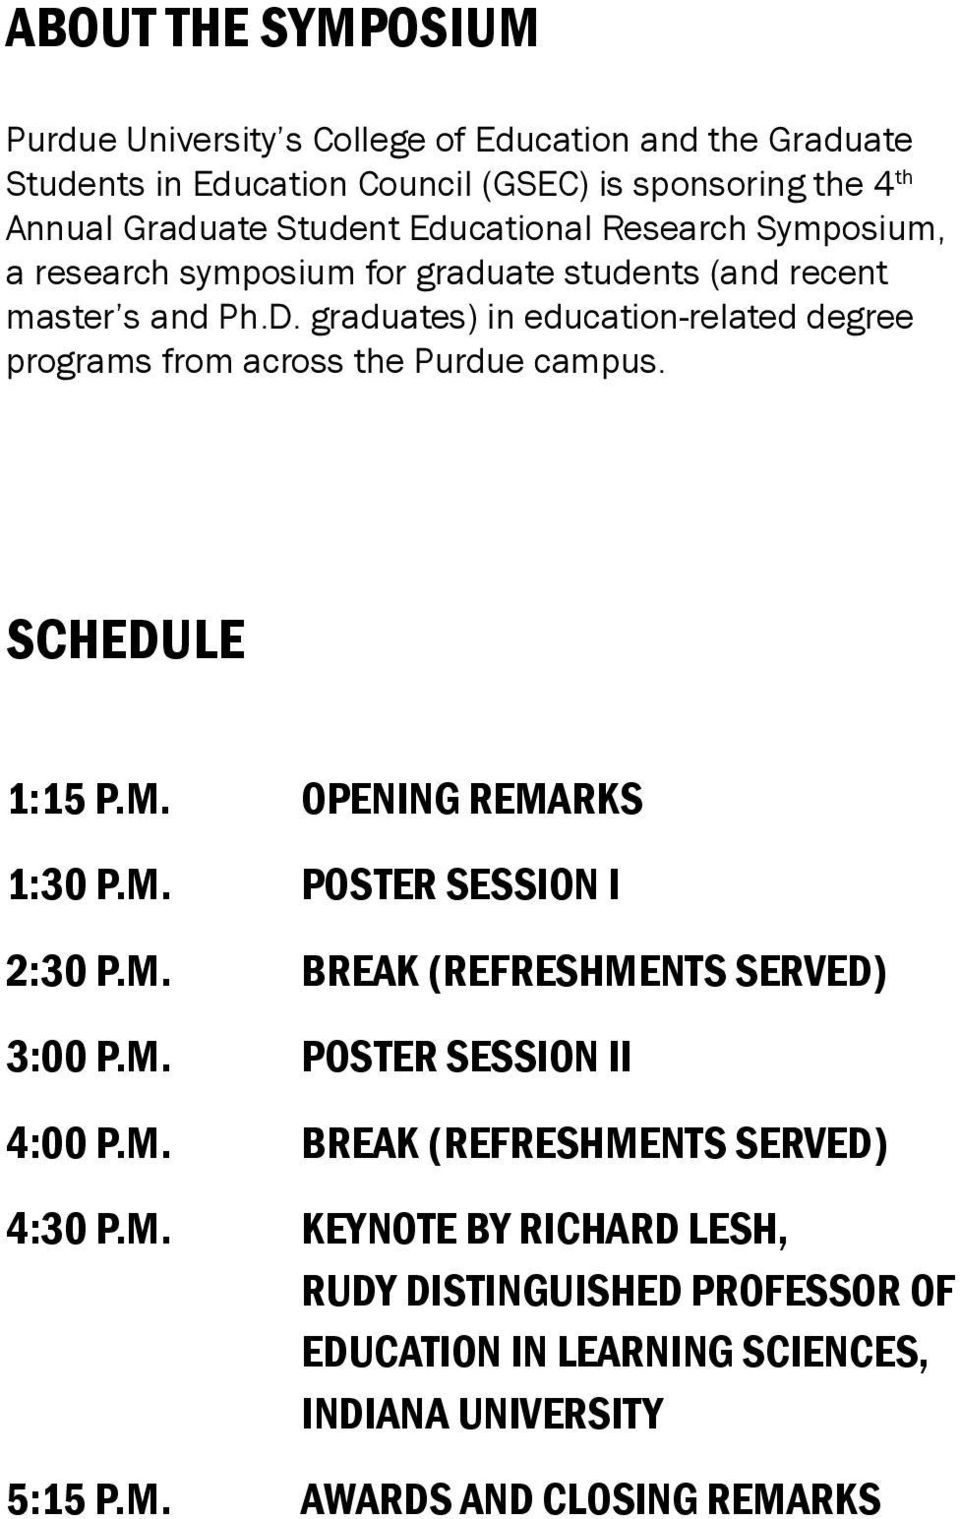 graduates) in education-related degree programs from across the Purdue campus. schedule 1:15 p.m. Opening remarks 1:30 p.m. Poster Session I 2:30 p.m. Break (refreshments served) 3:00 p.